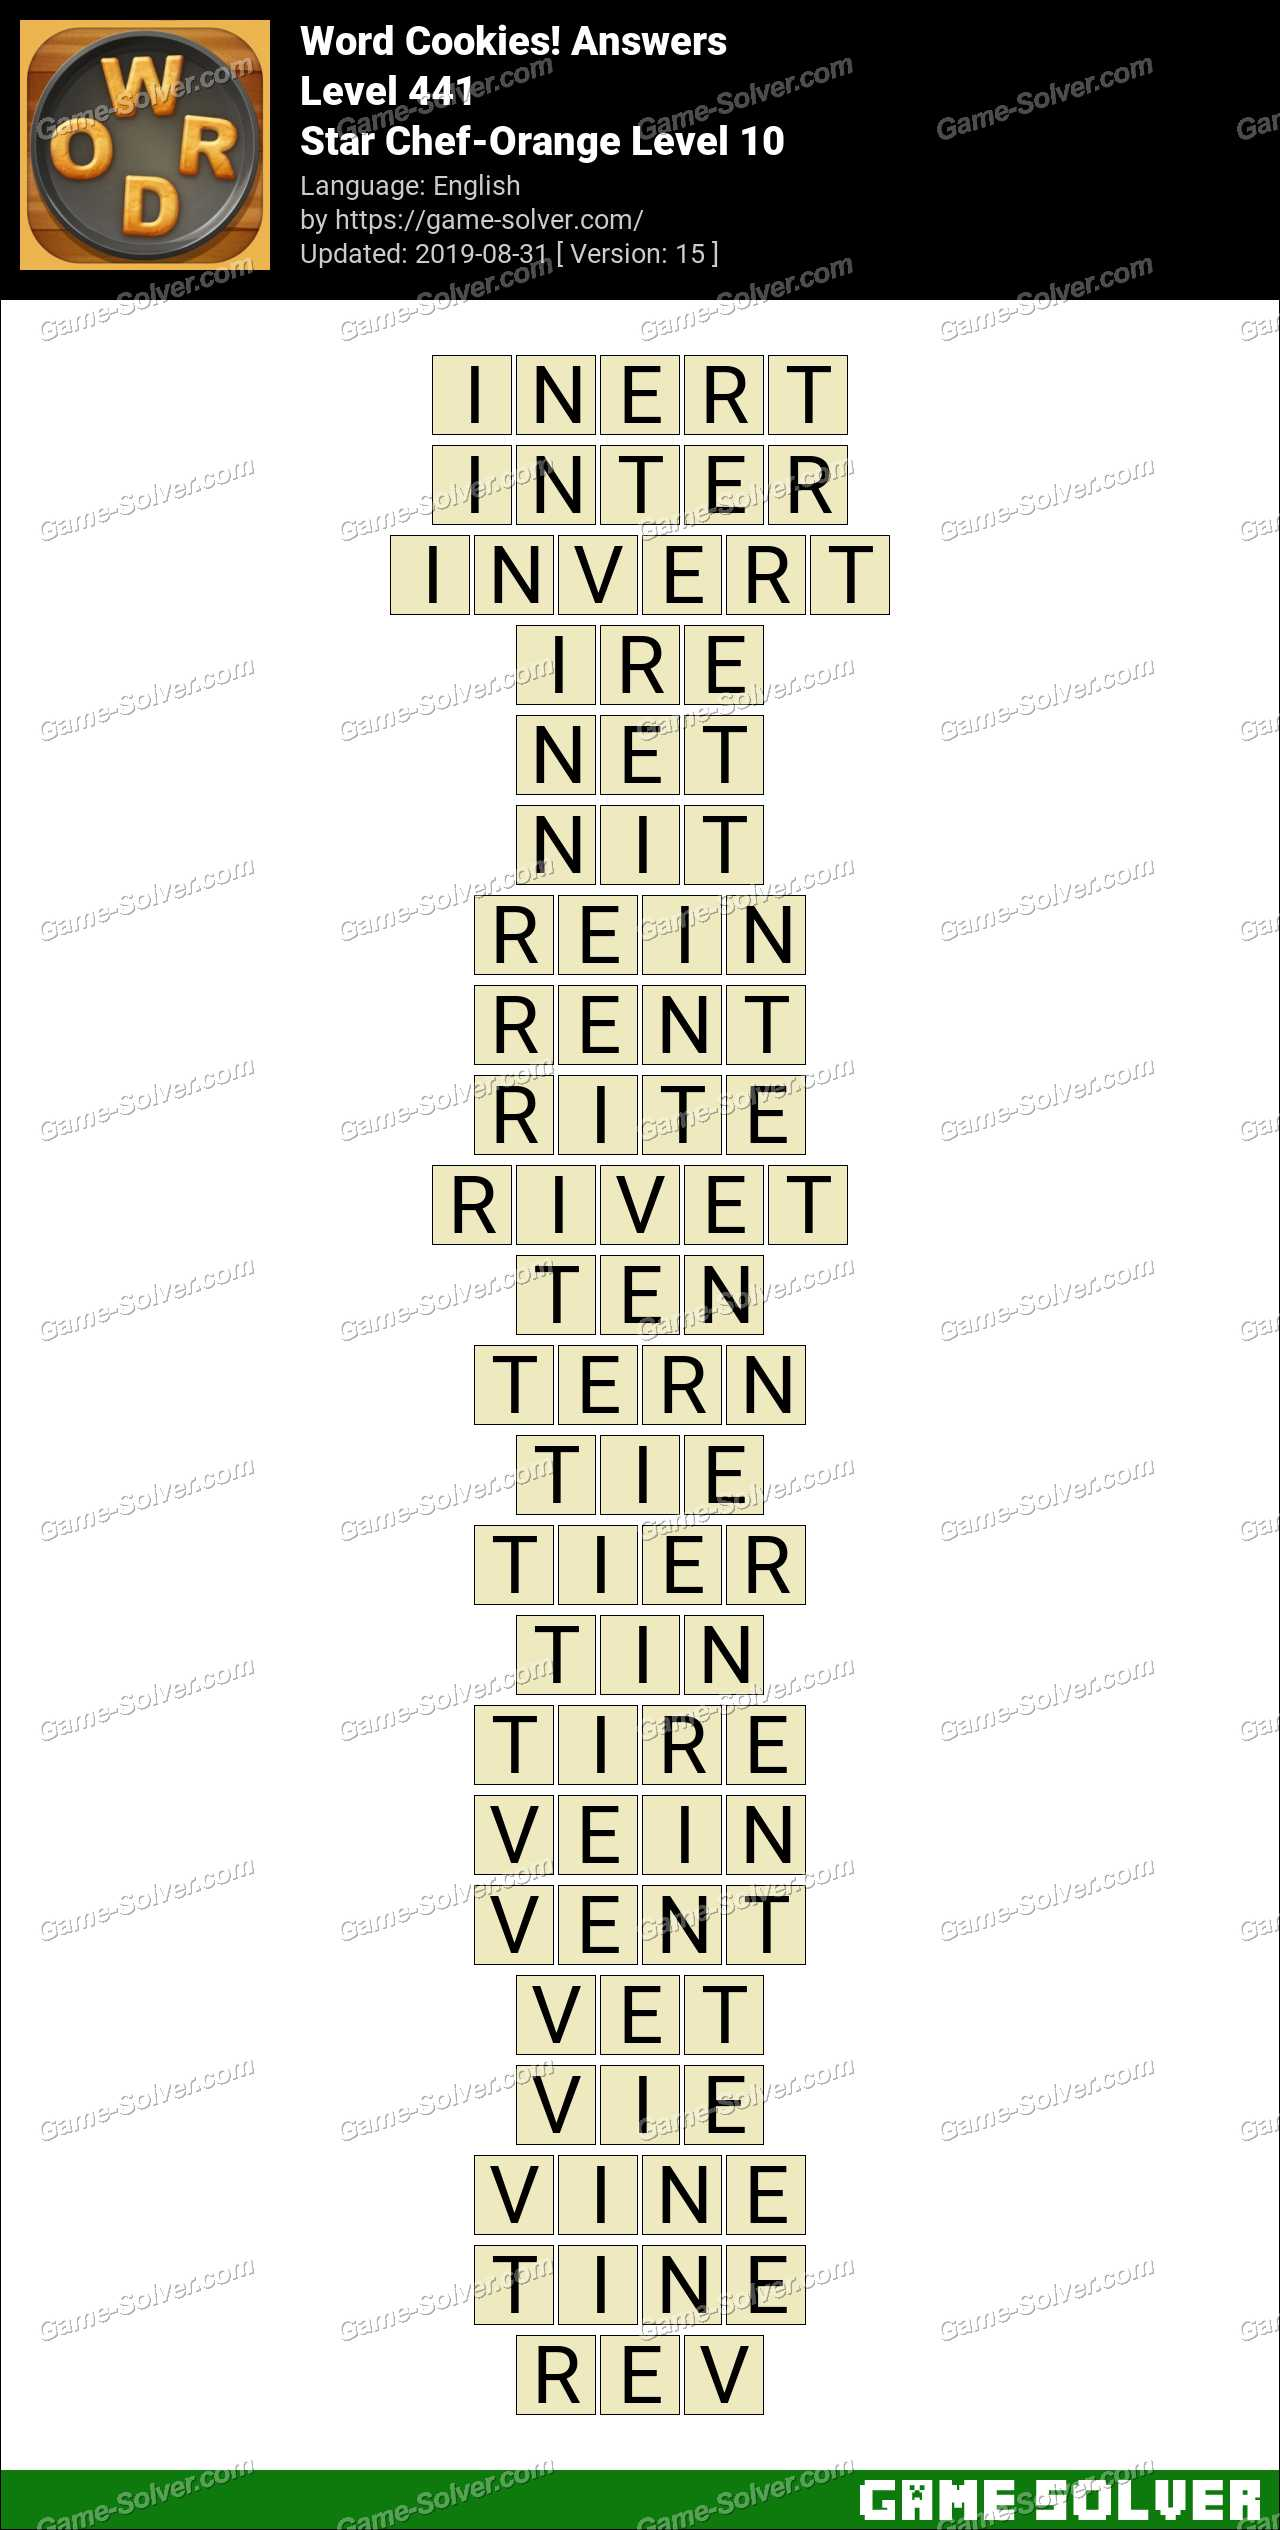 Word Cookies Star Chef-Orange Level 10 Answers